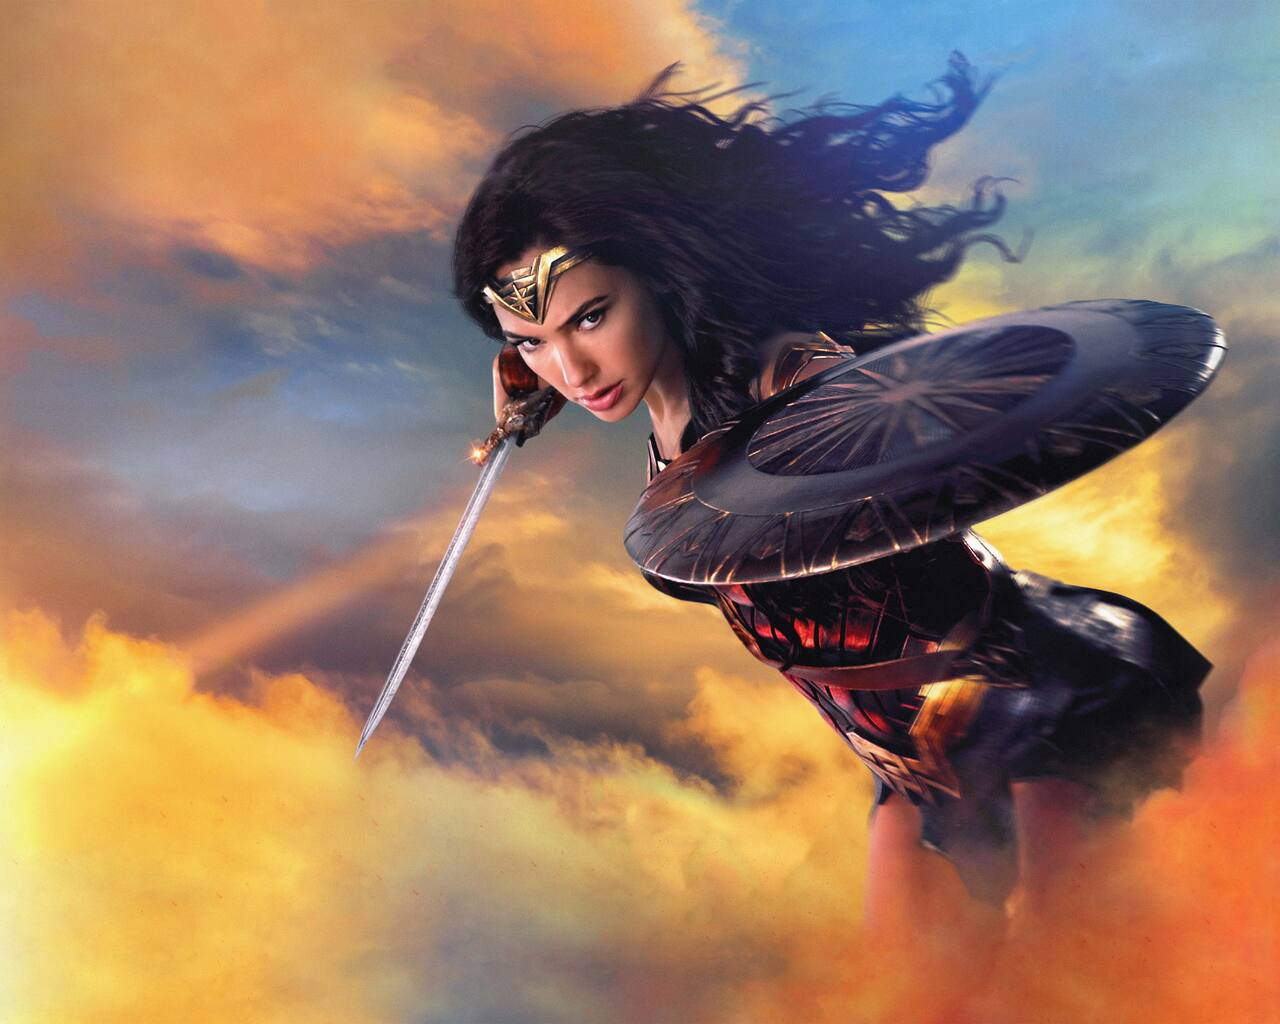 2017 Wonder Woman 4k Hd Movies 4k Wallpapers Images: 1280x1024 2017 Wonder Woman 8k 1280x1024 Resolution HD 4k